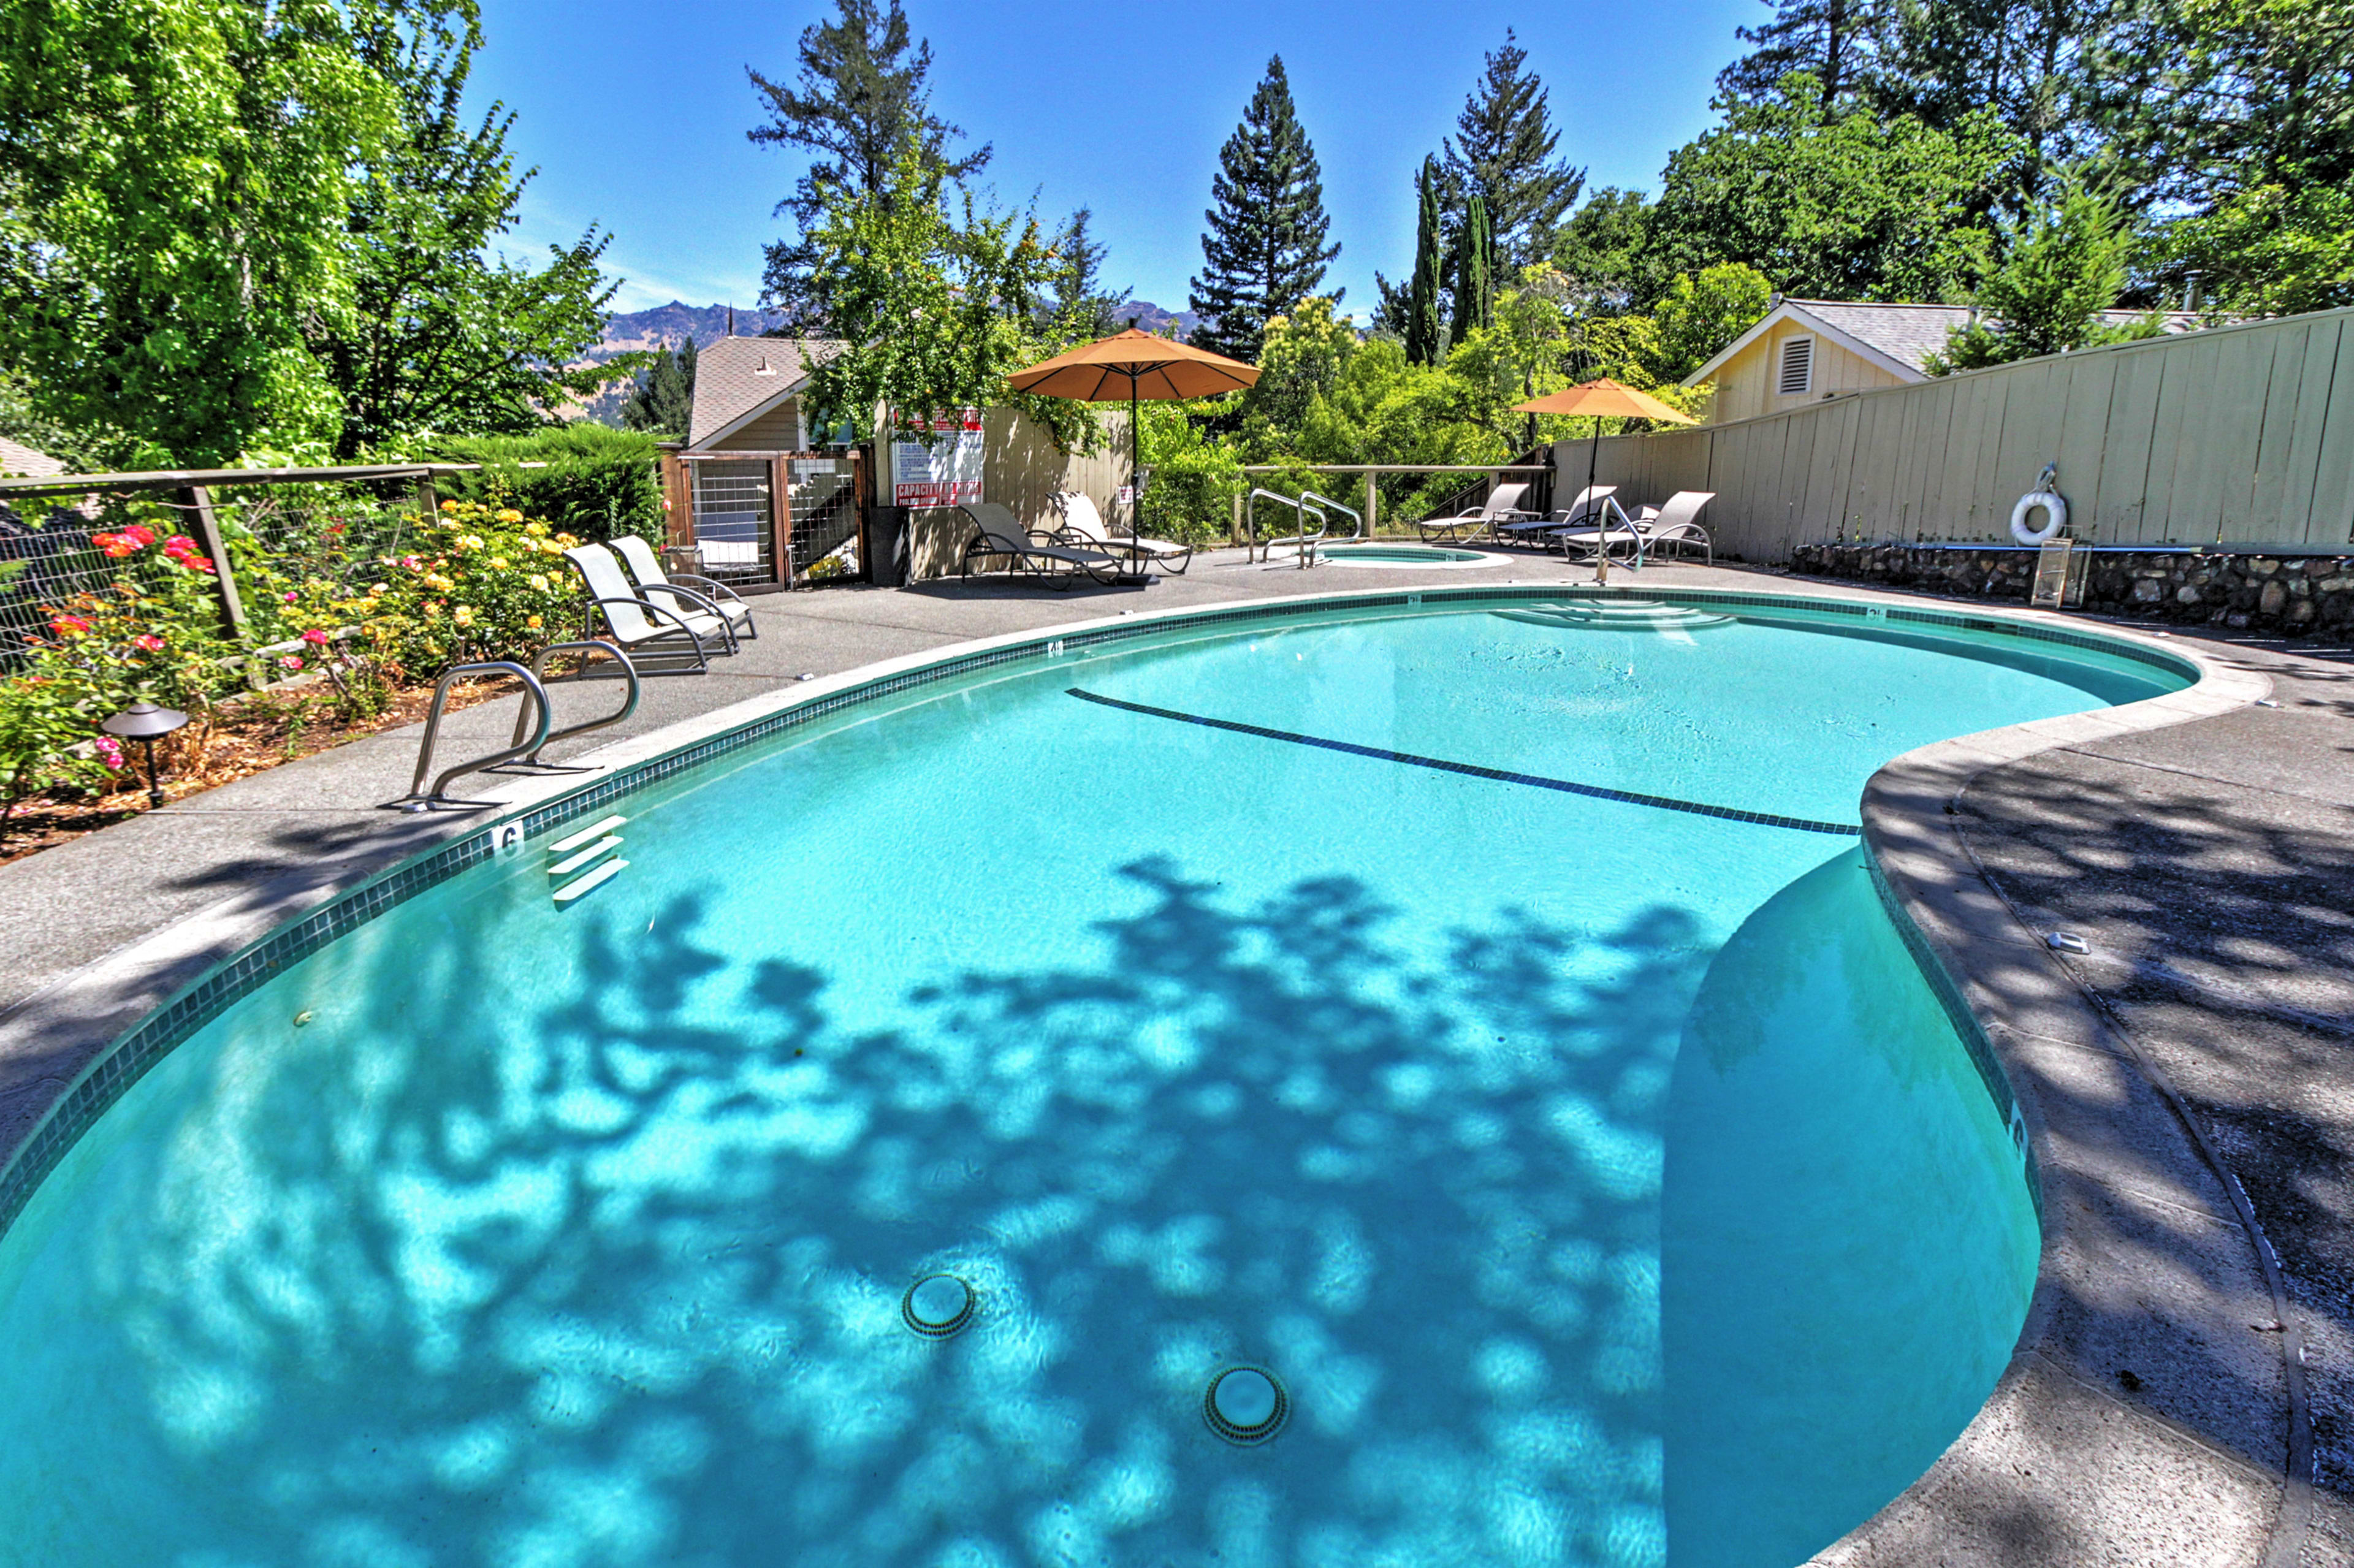 The picturesque exterior space features a private pool, hot tub and courtyard.